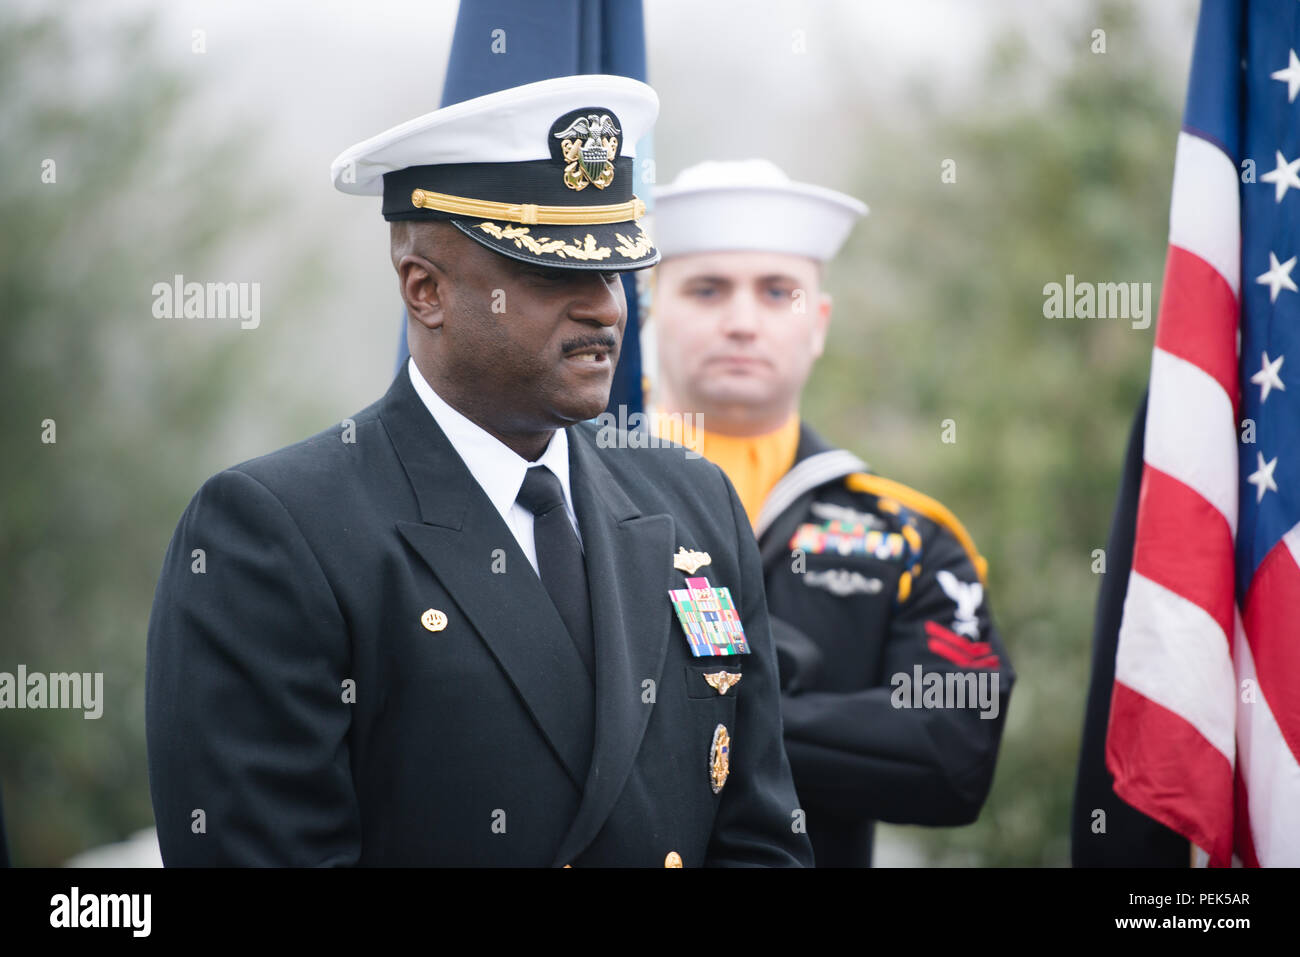 "Capt. Darryl Jackson, commanding officer, Hopper Information Services Center, gives remarks during a ceremony to honor U.S. Navy Rear Adm. Grace Hopper at Arlington National Cemetery, Dec. 9, 2015, in Arlington, Va. Hopper was a pioneering computer scientist and was nicknamed ""Amazing Grace."" (U.S. Army photo by Rachel Larue/Arlington National Cemetery/released) - Stock Image"